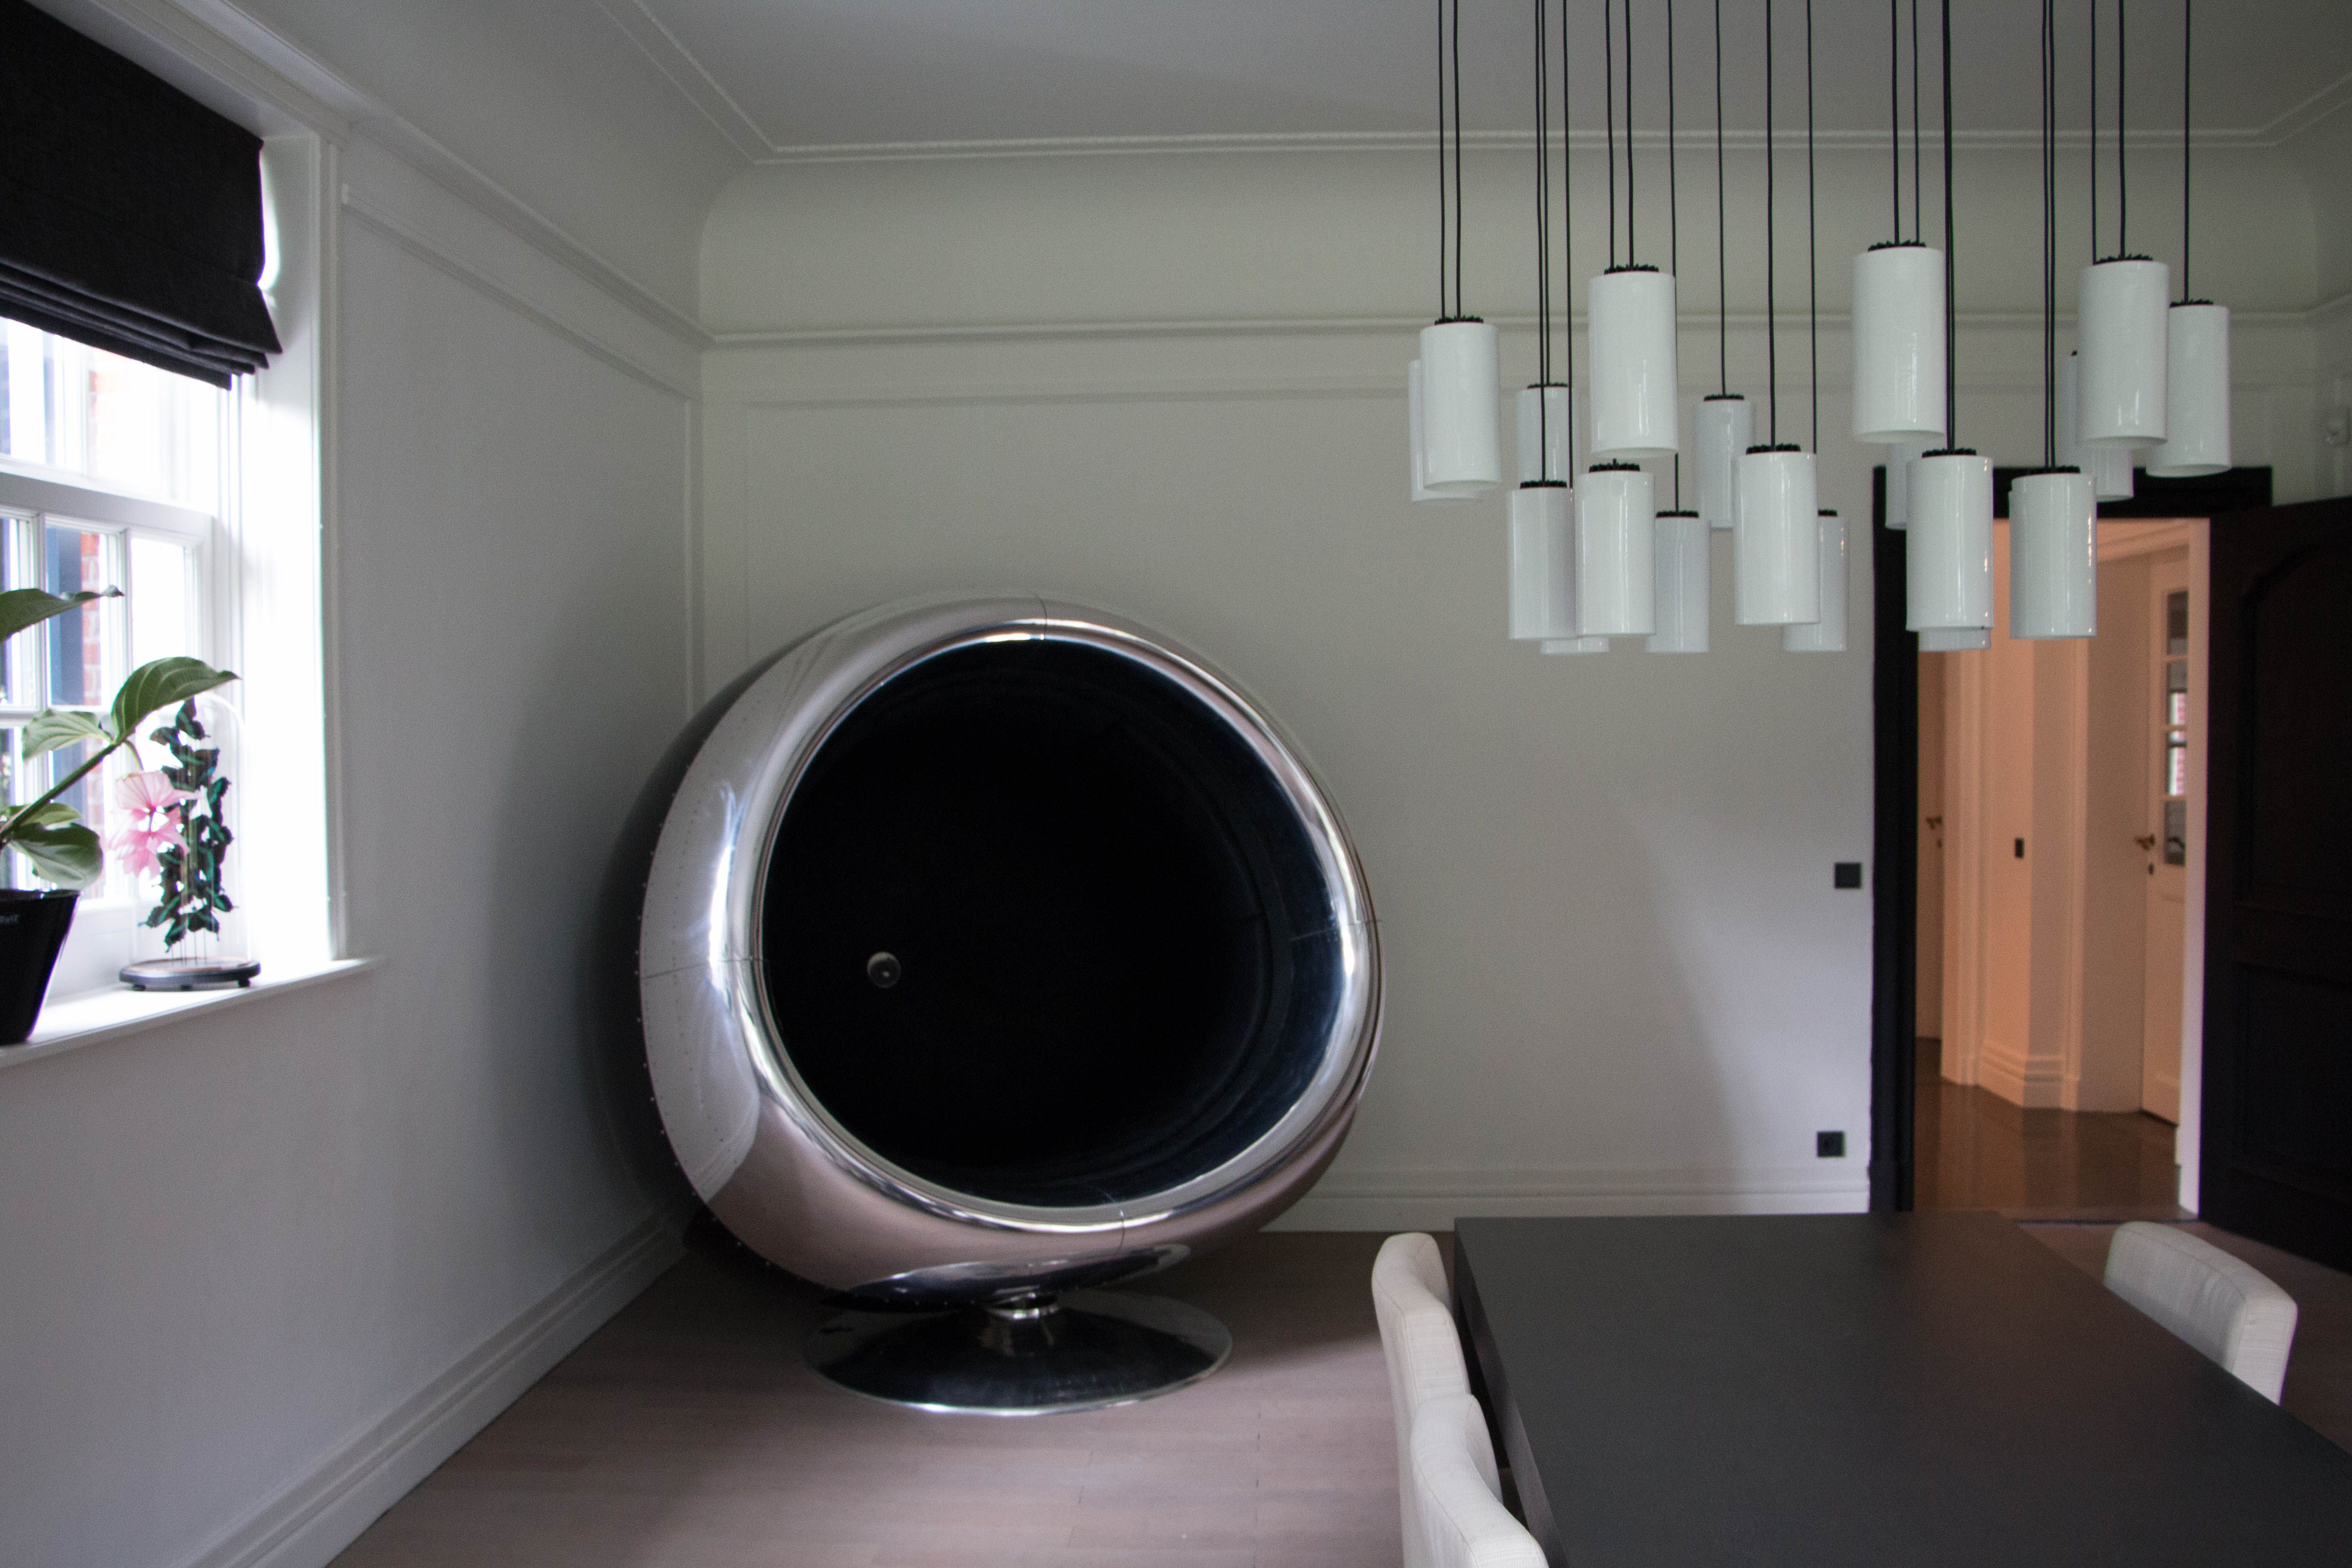 Boeing 737 Engine cowling chair made by Plane Industries in the